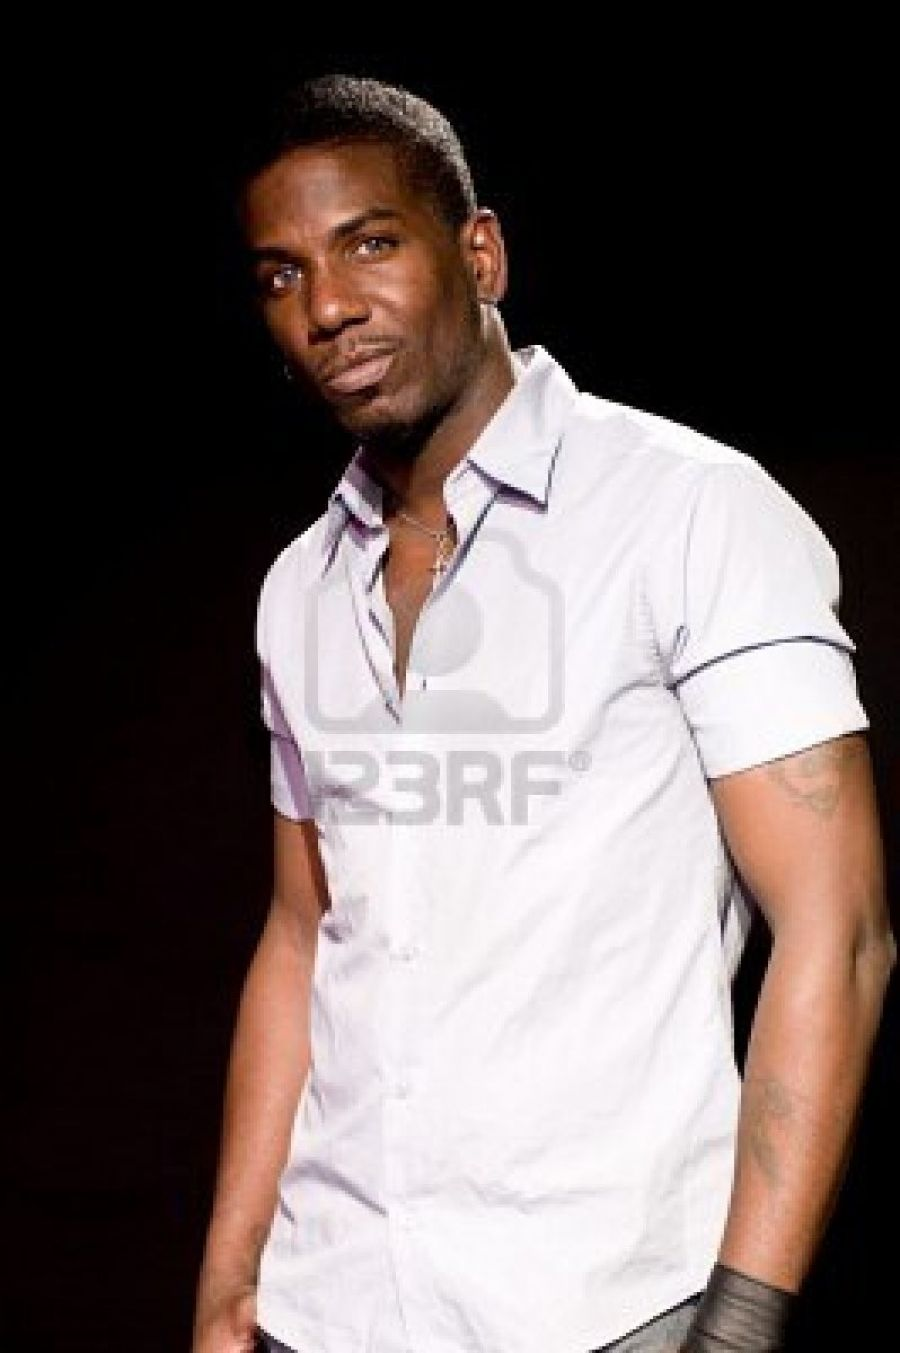 Handsome Black African American Male Stage Actor Model Portrait Pose In Theater Stage